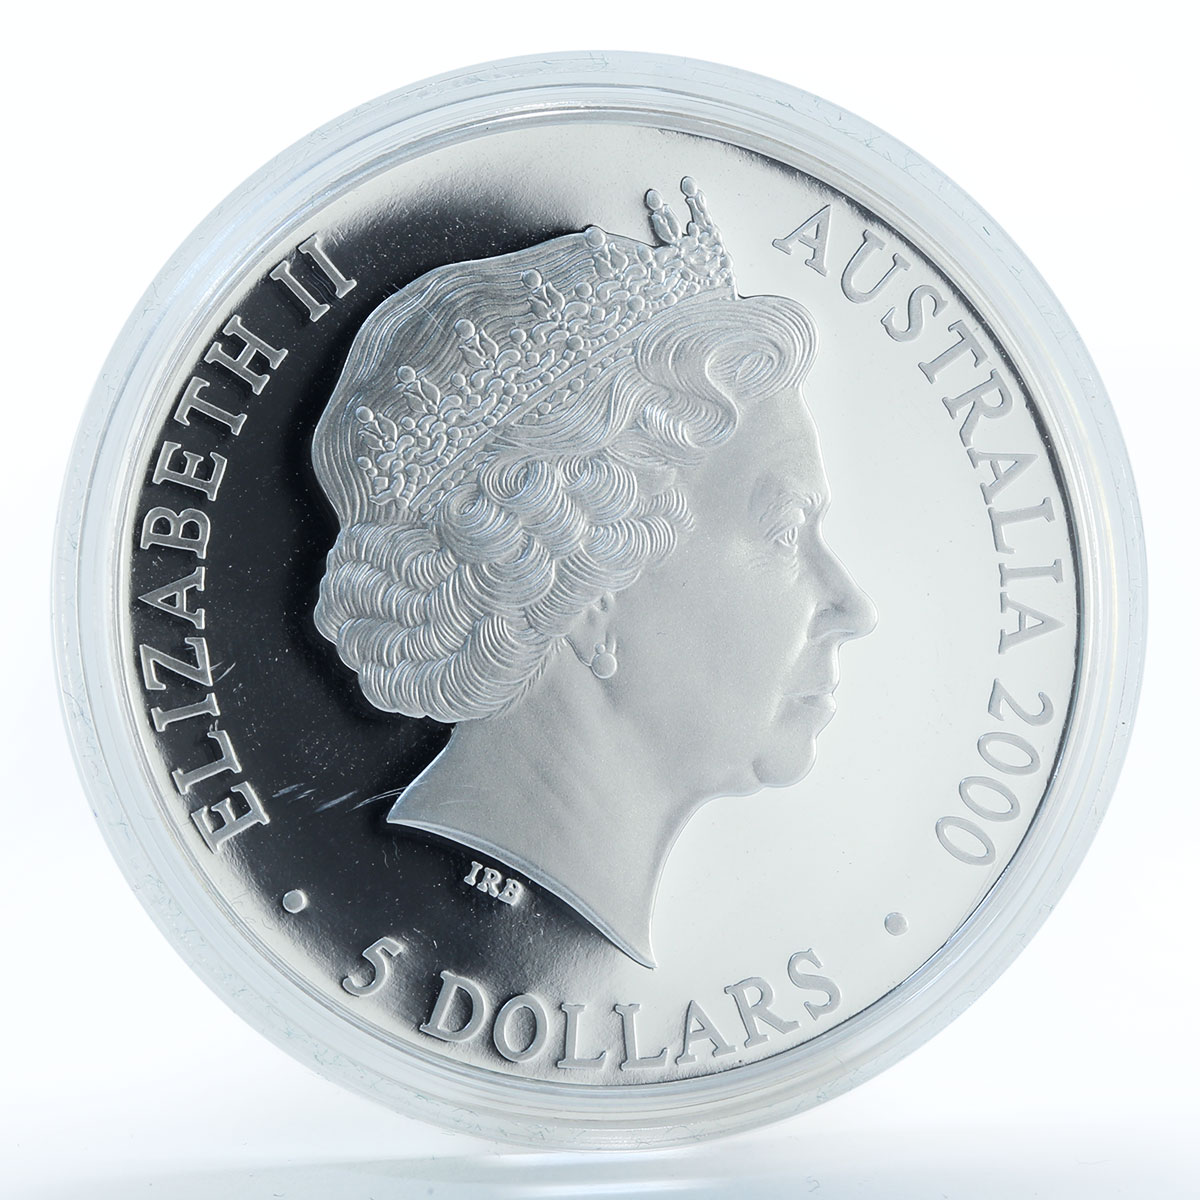 Australia 5 dollars Sydney Olympic logo at bottom silver coin 2000